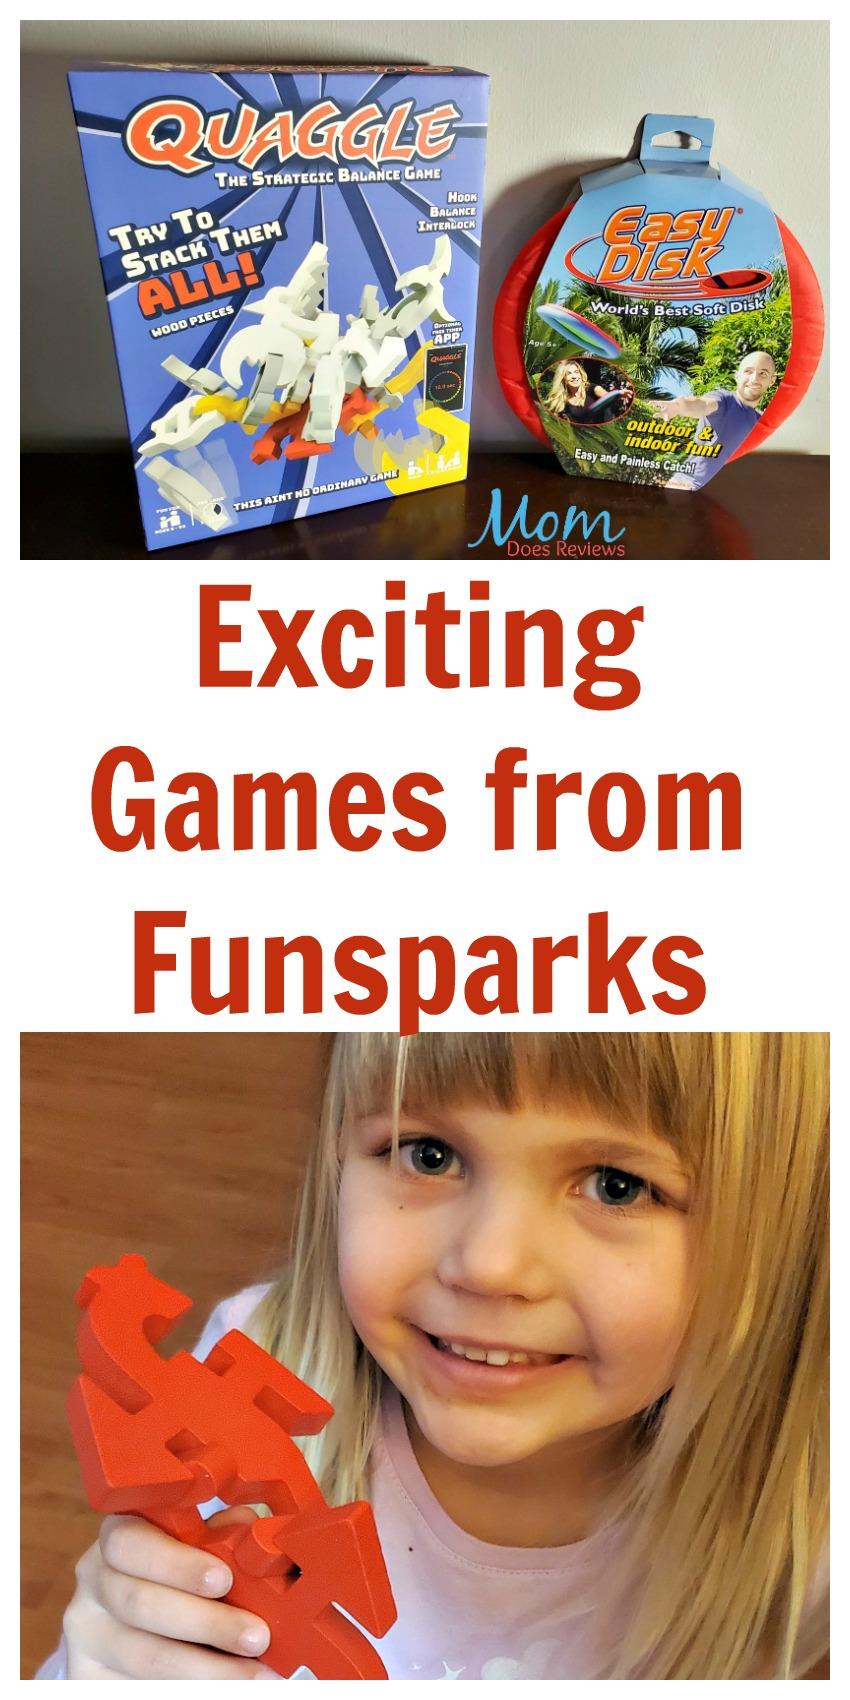 Exciting Games from Funsparks